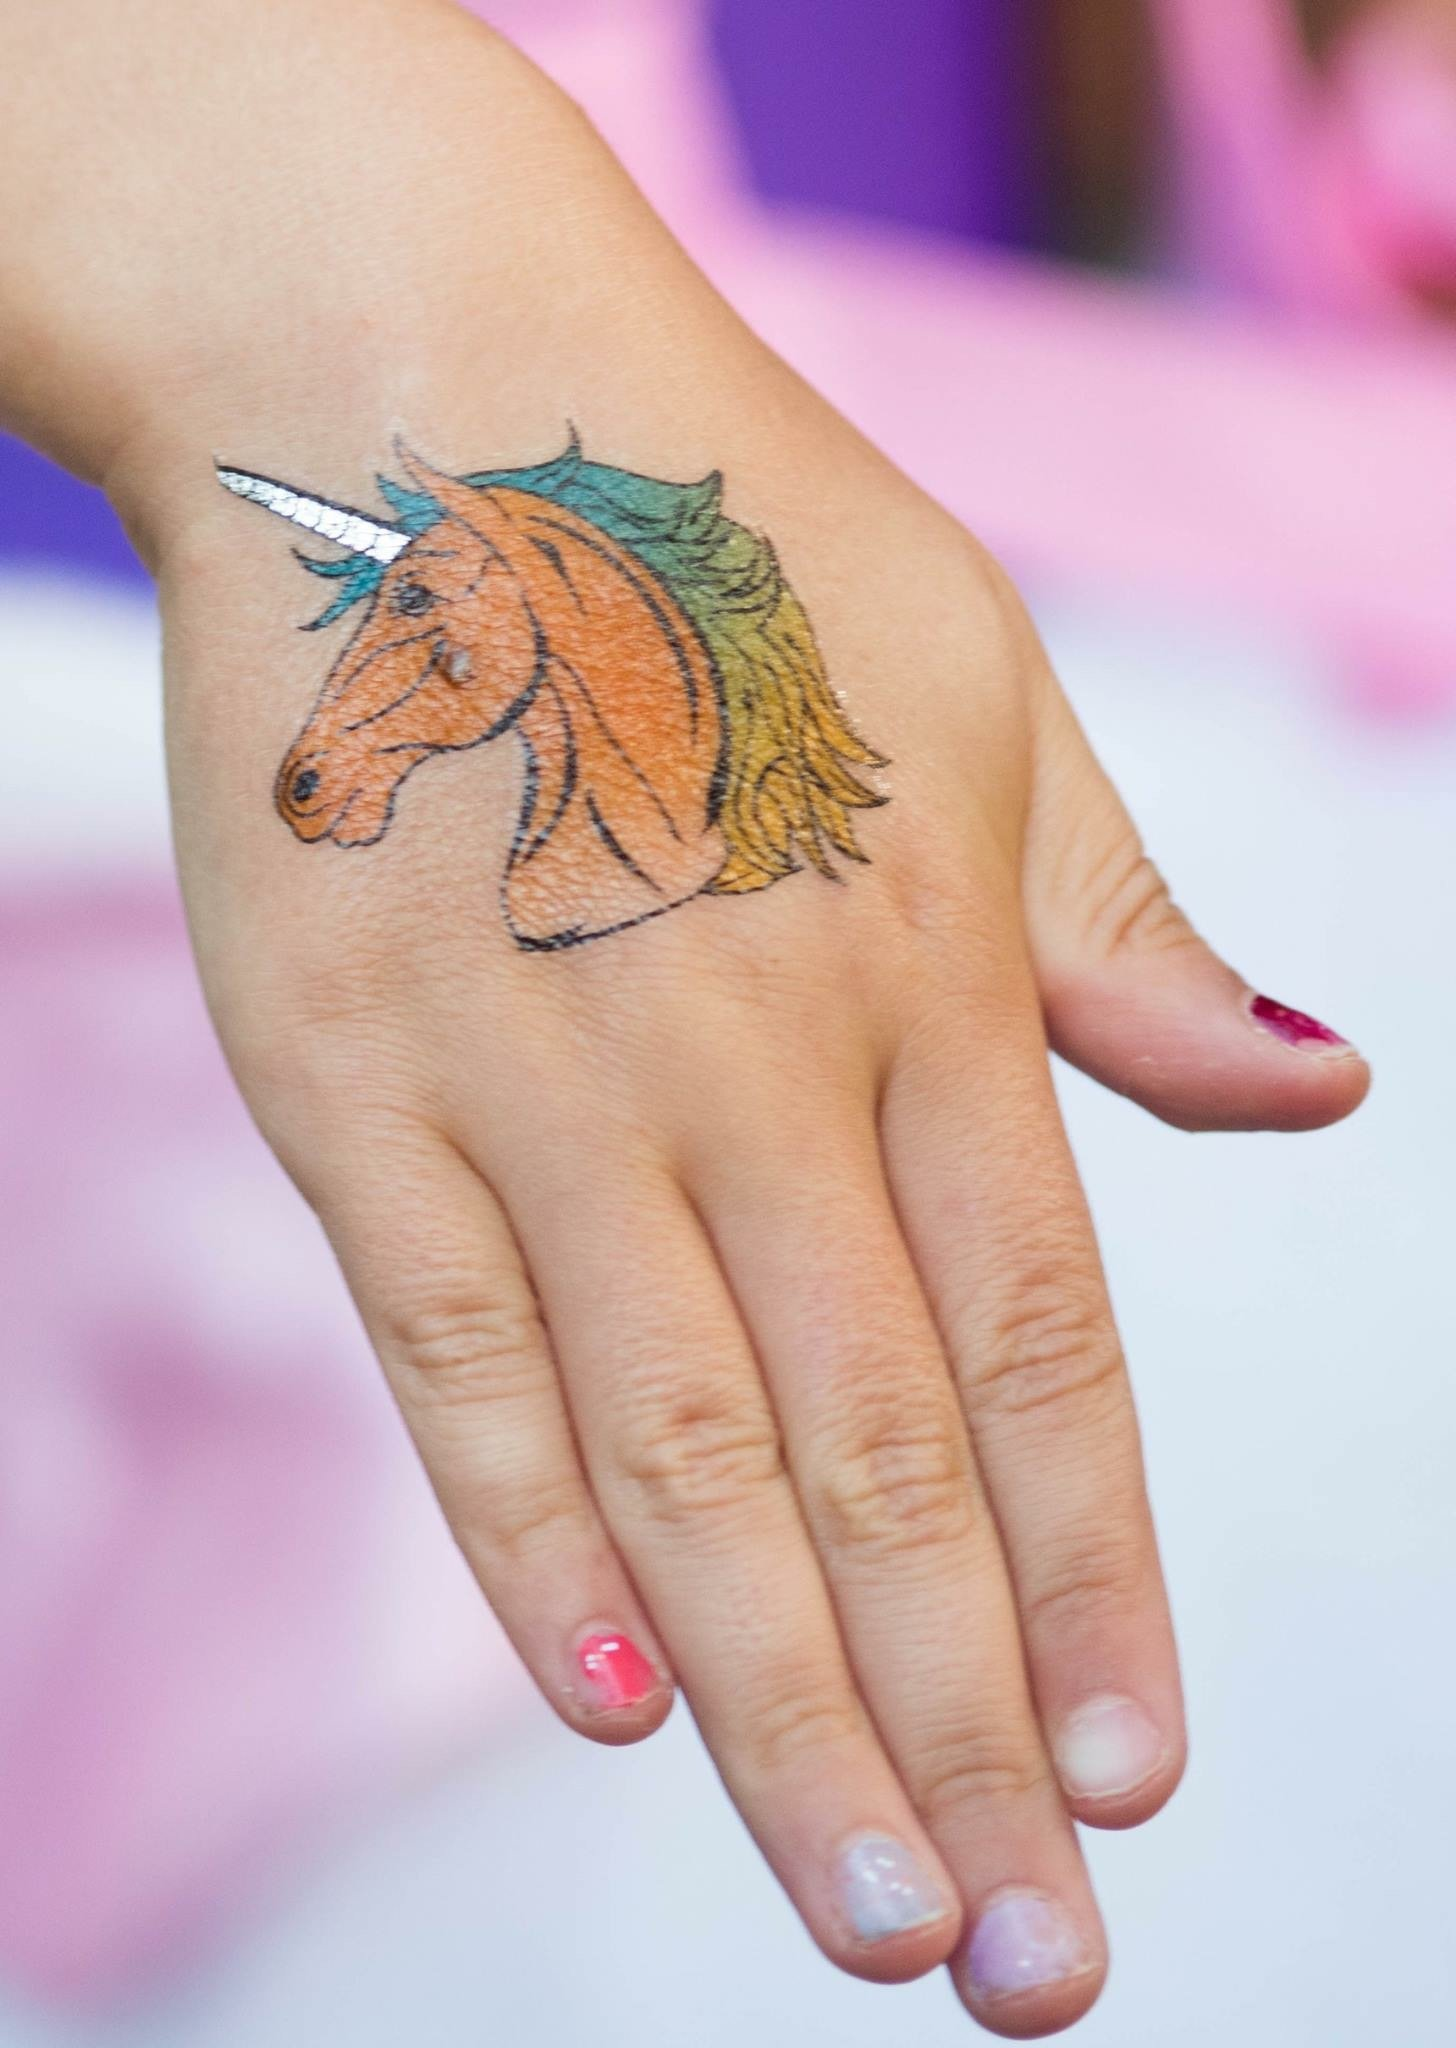 Unicorn Temporary Tattoos for Girls Best for Unicorn Party Supplies Party Favors and Unicorn Birthdays Beautiful Metallic Unicorn and Pegasus Tattoos By John & Judy 8